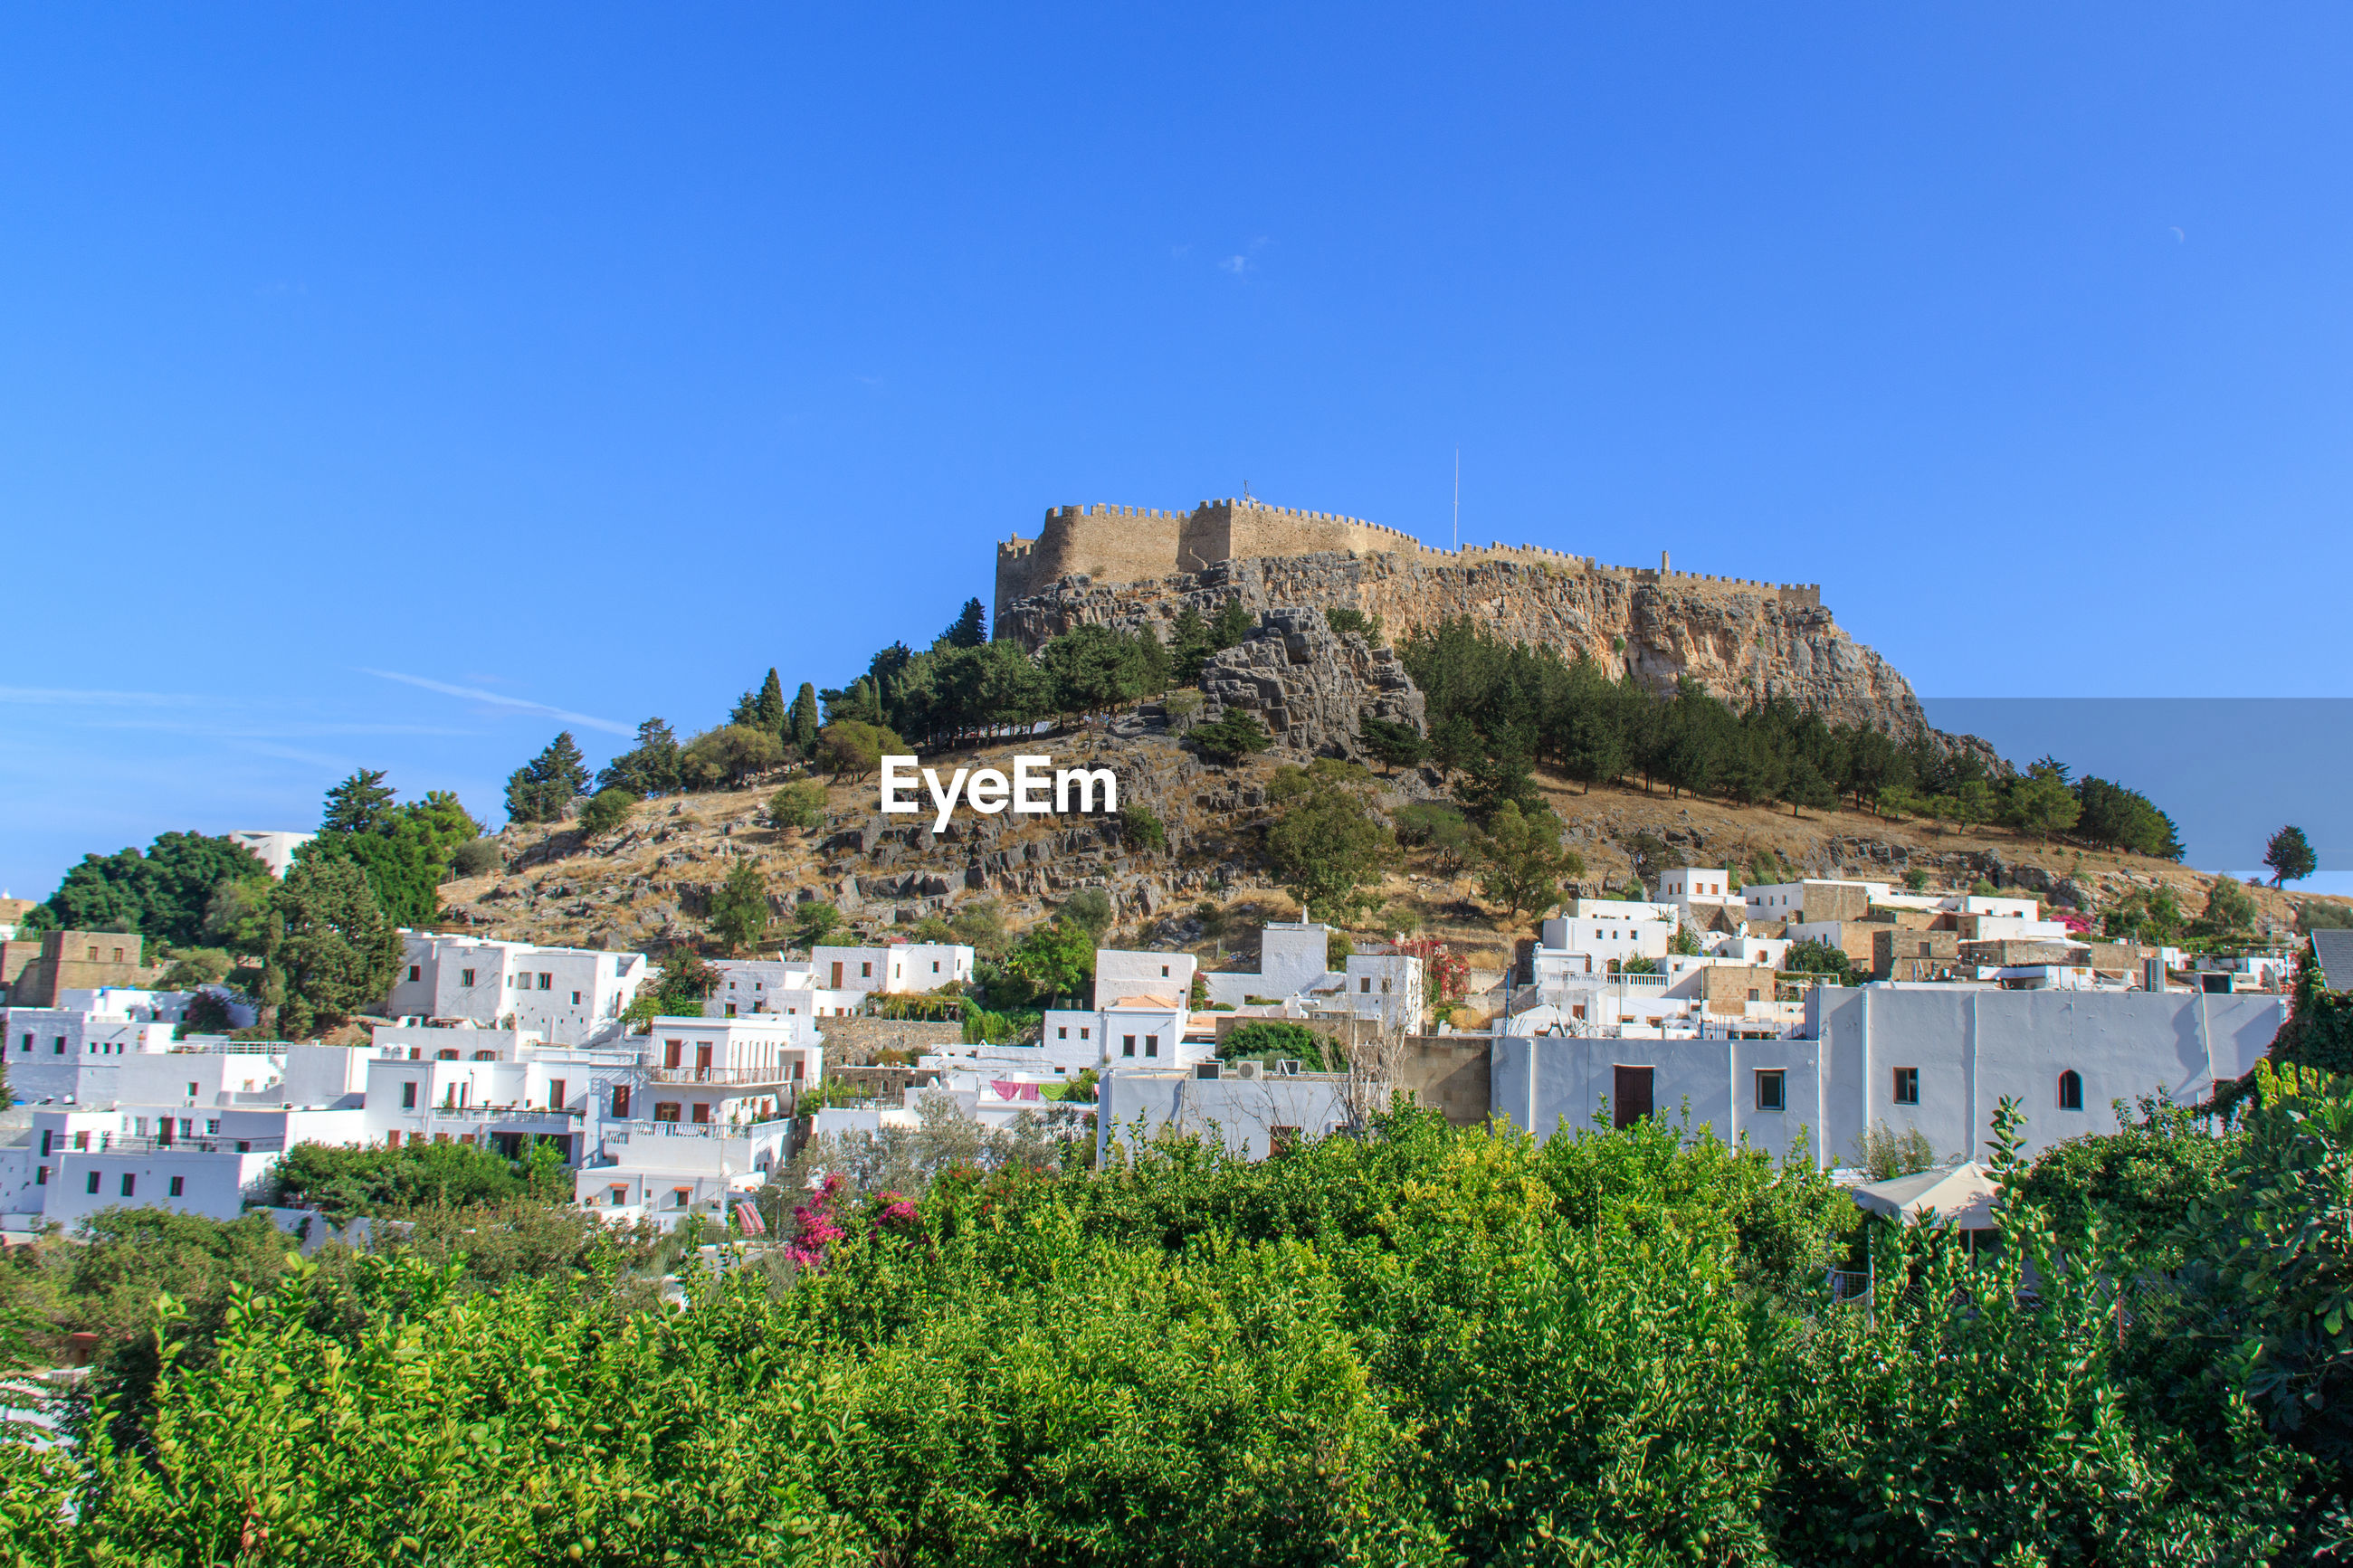 Low angle view of village with castle against blue sky